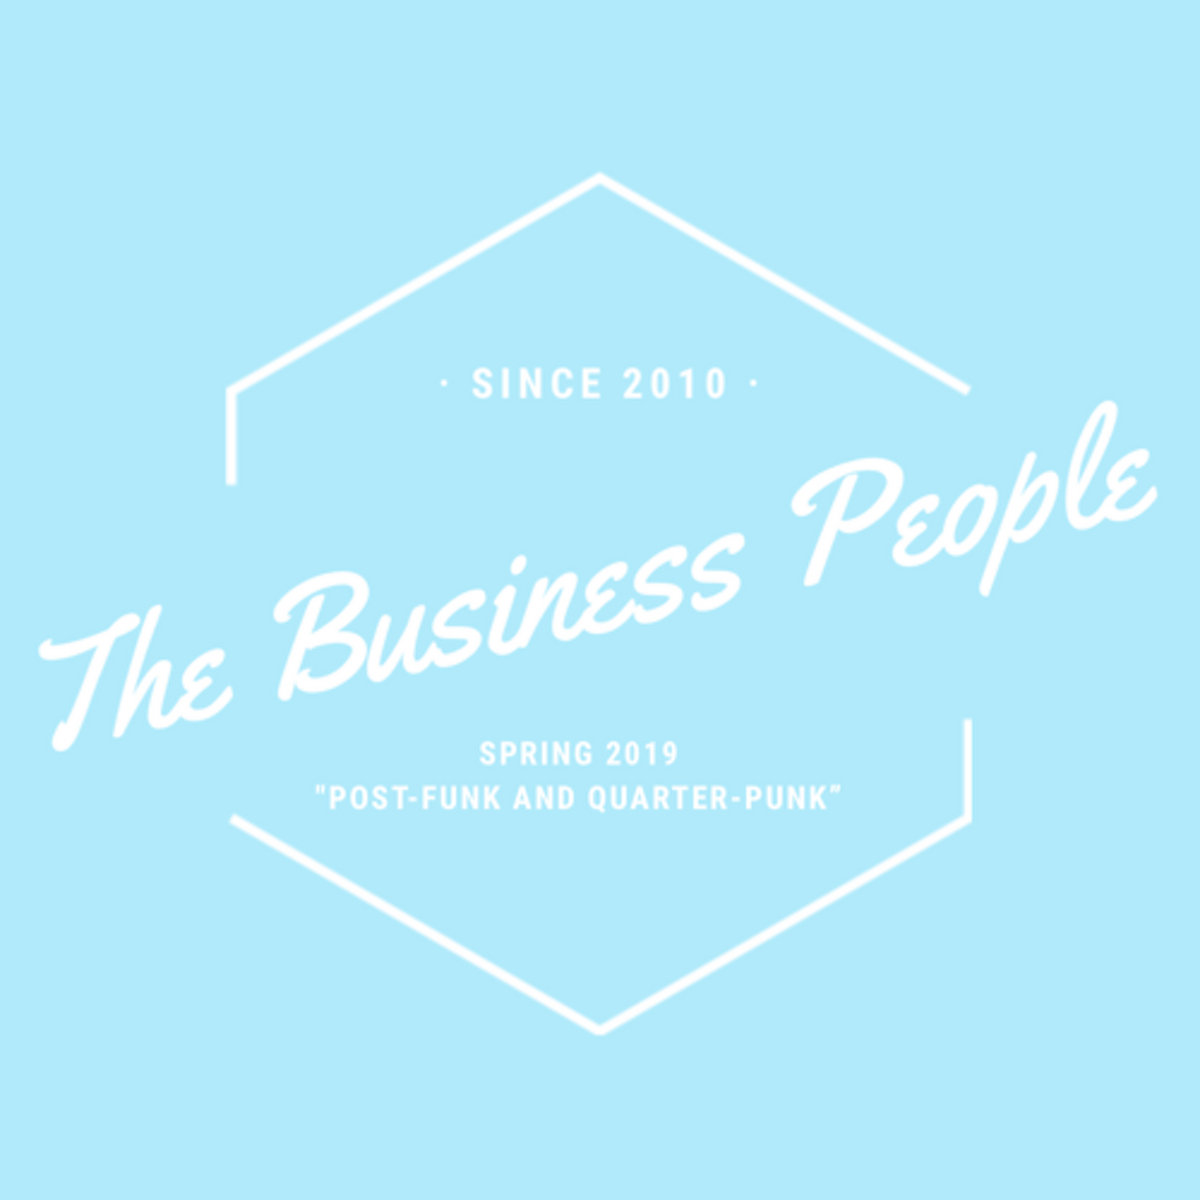 The Business People